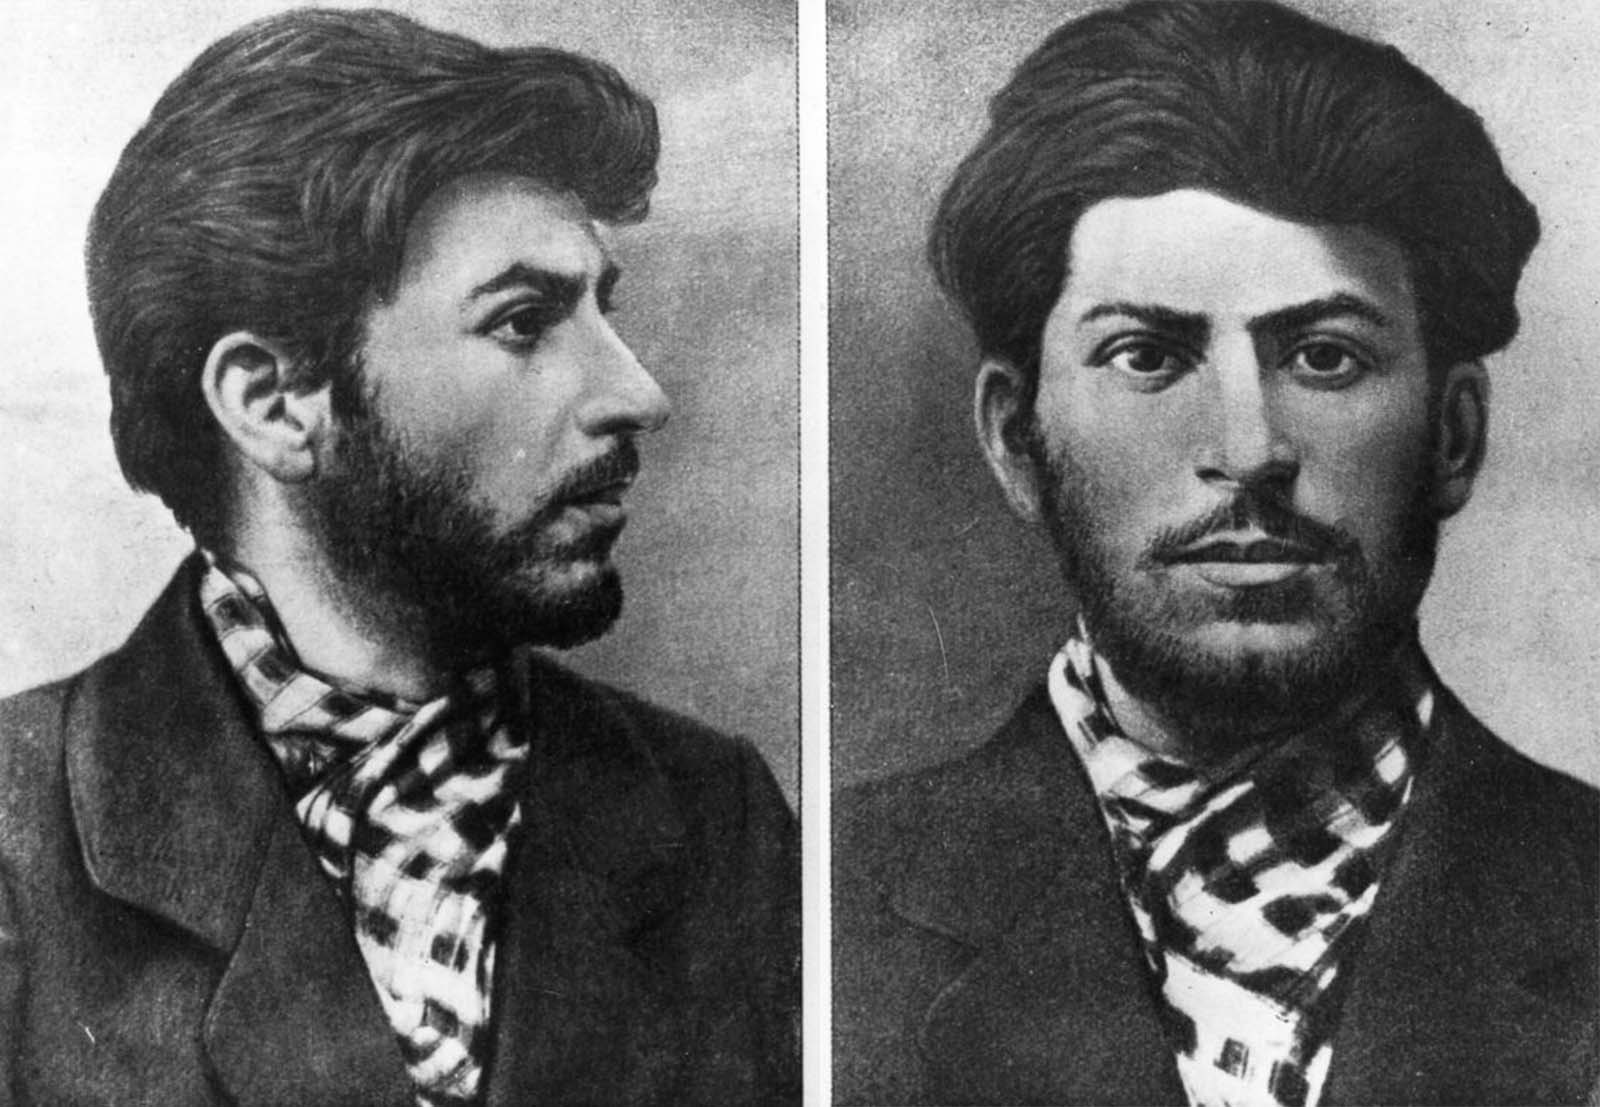 A mugshot of 23-year-old Stalin from a police file. 1901.